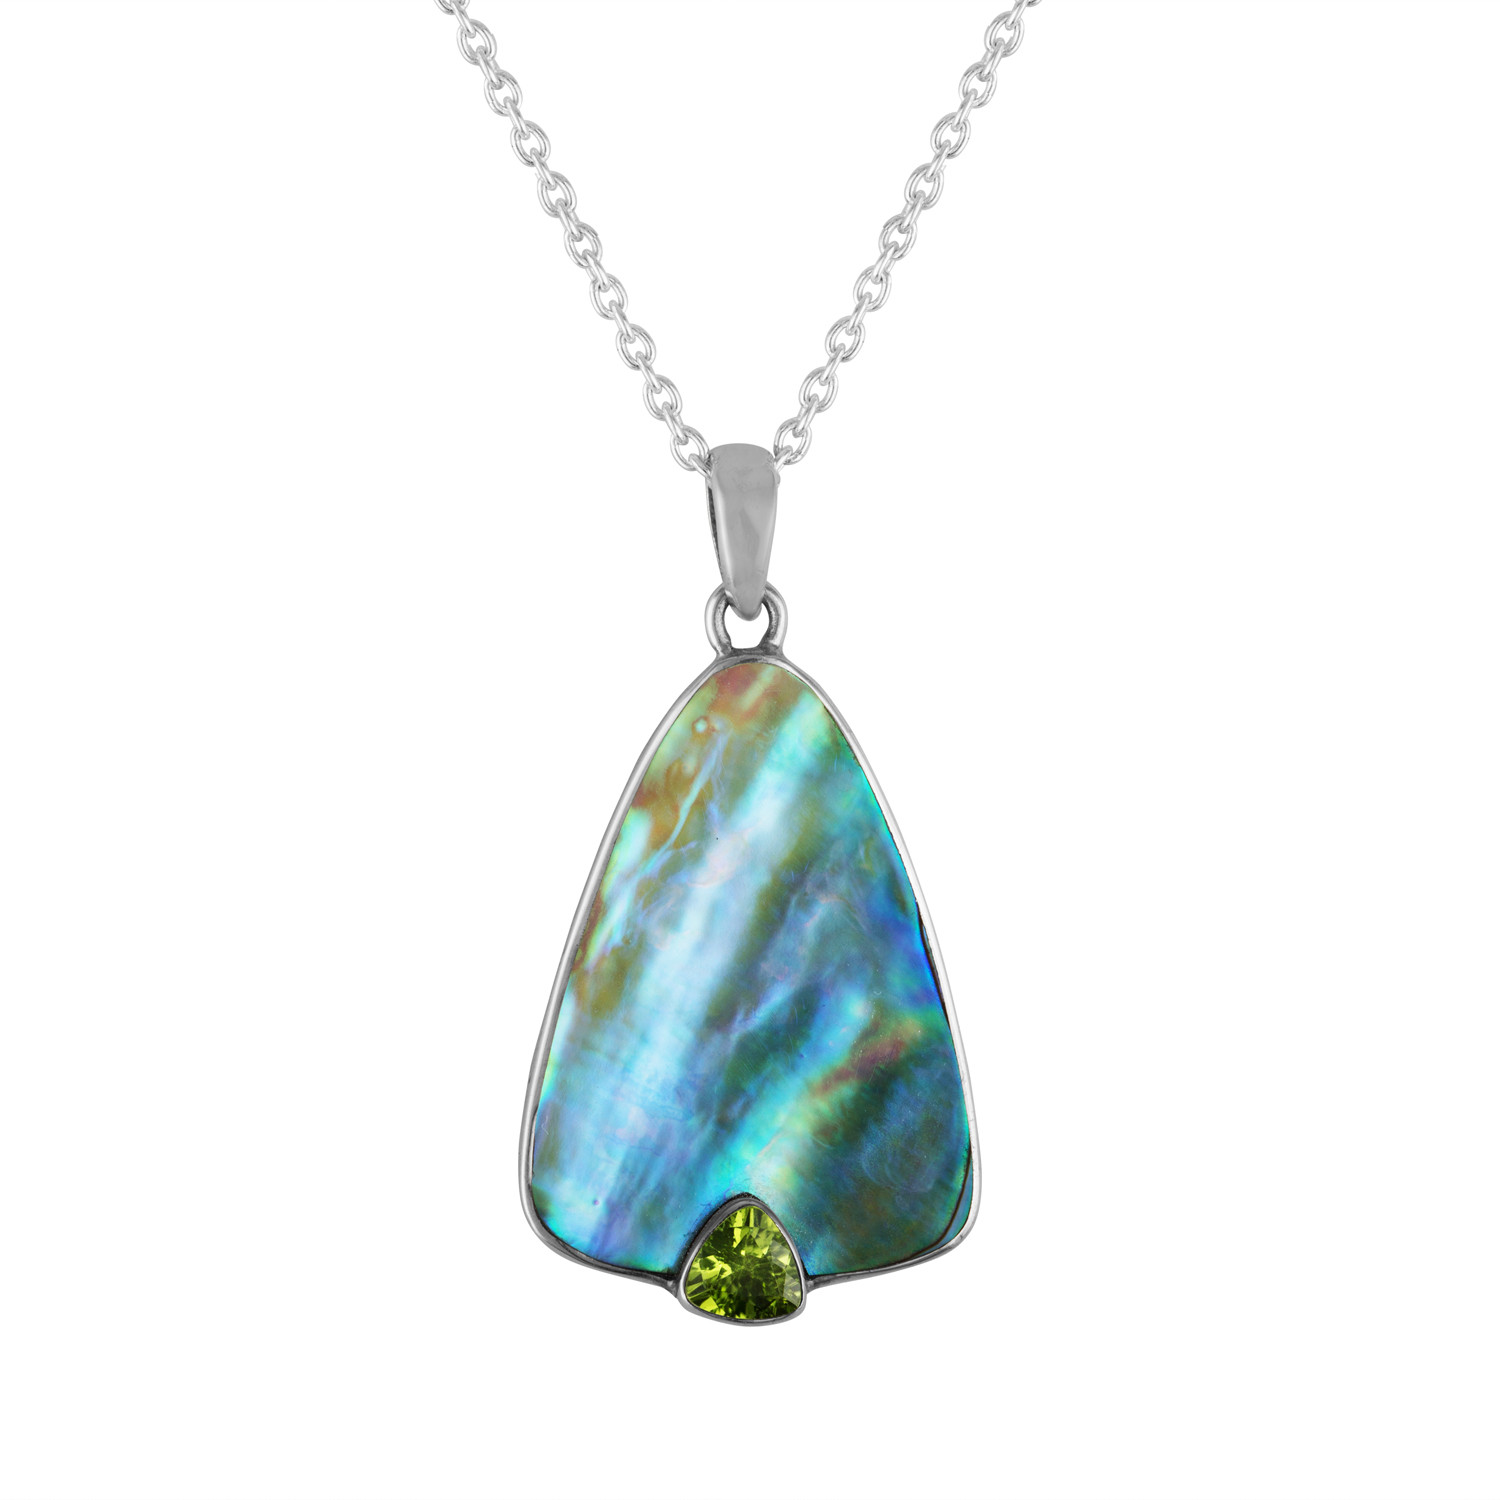 Abalone pendant with Peridot accent in Sterling Silver